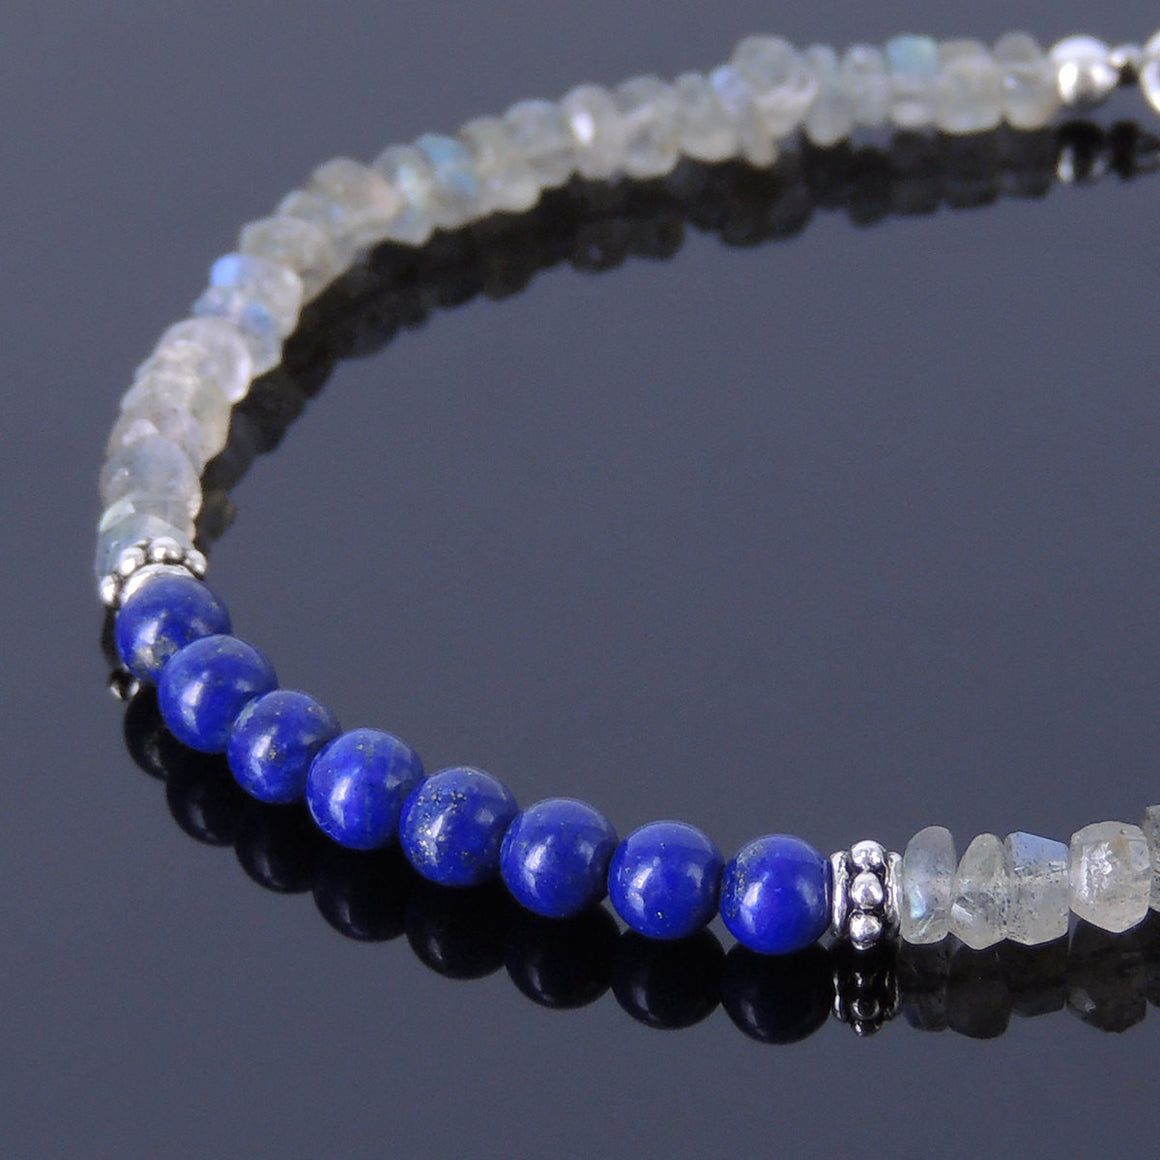 2x4mm Faceted Labradorite & 4mm Lapis Lazuli Healing Gemstone Bracelet with S925 Sterling Silver Spacer Beads & Clasp - Handmade by Gem & Silver BR260